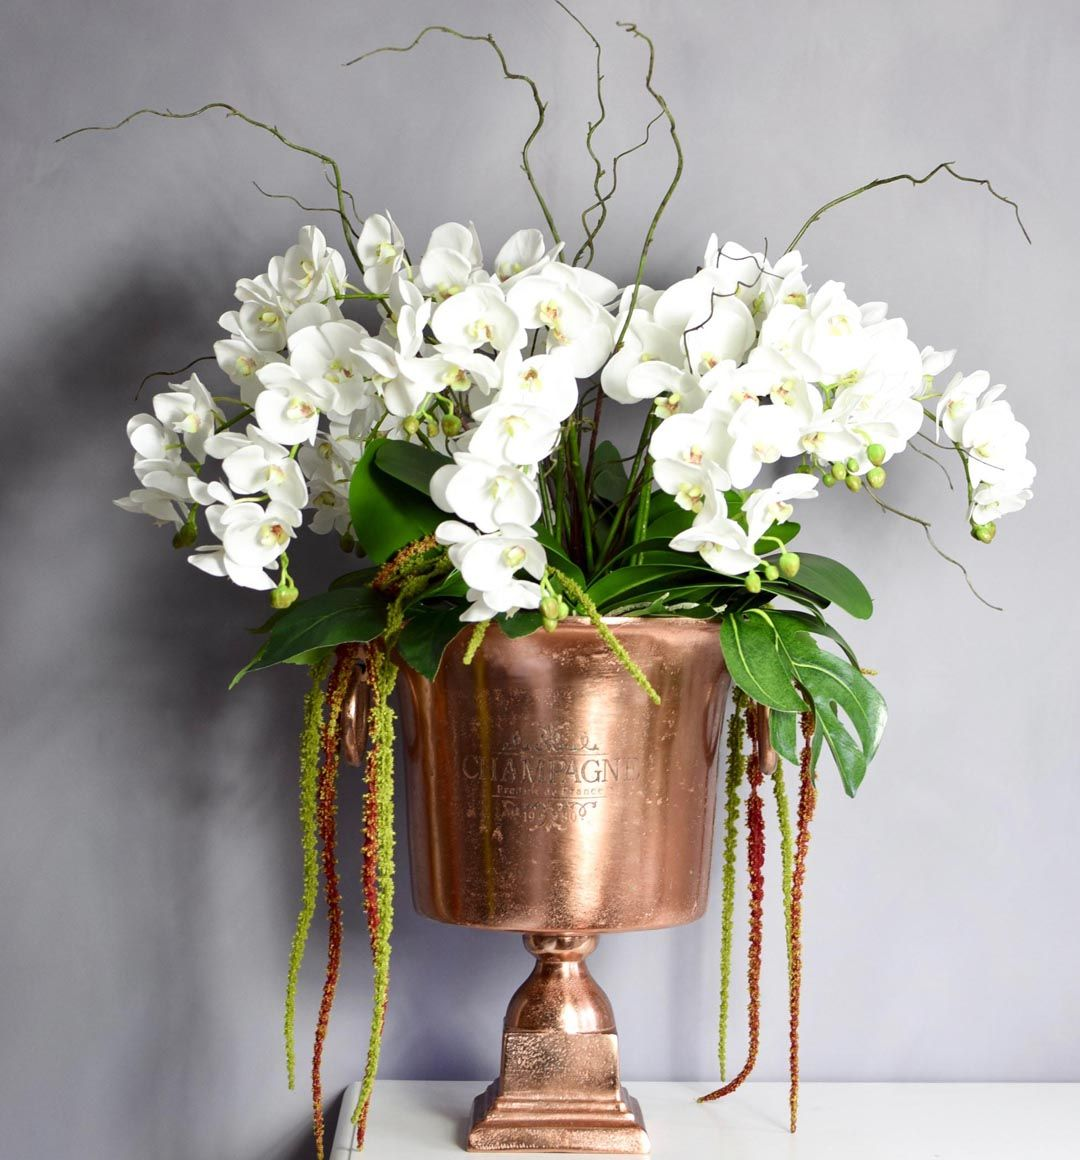 https//www.interflora.co.uk/product/gracefulbeautyvase